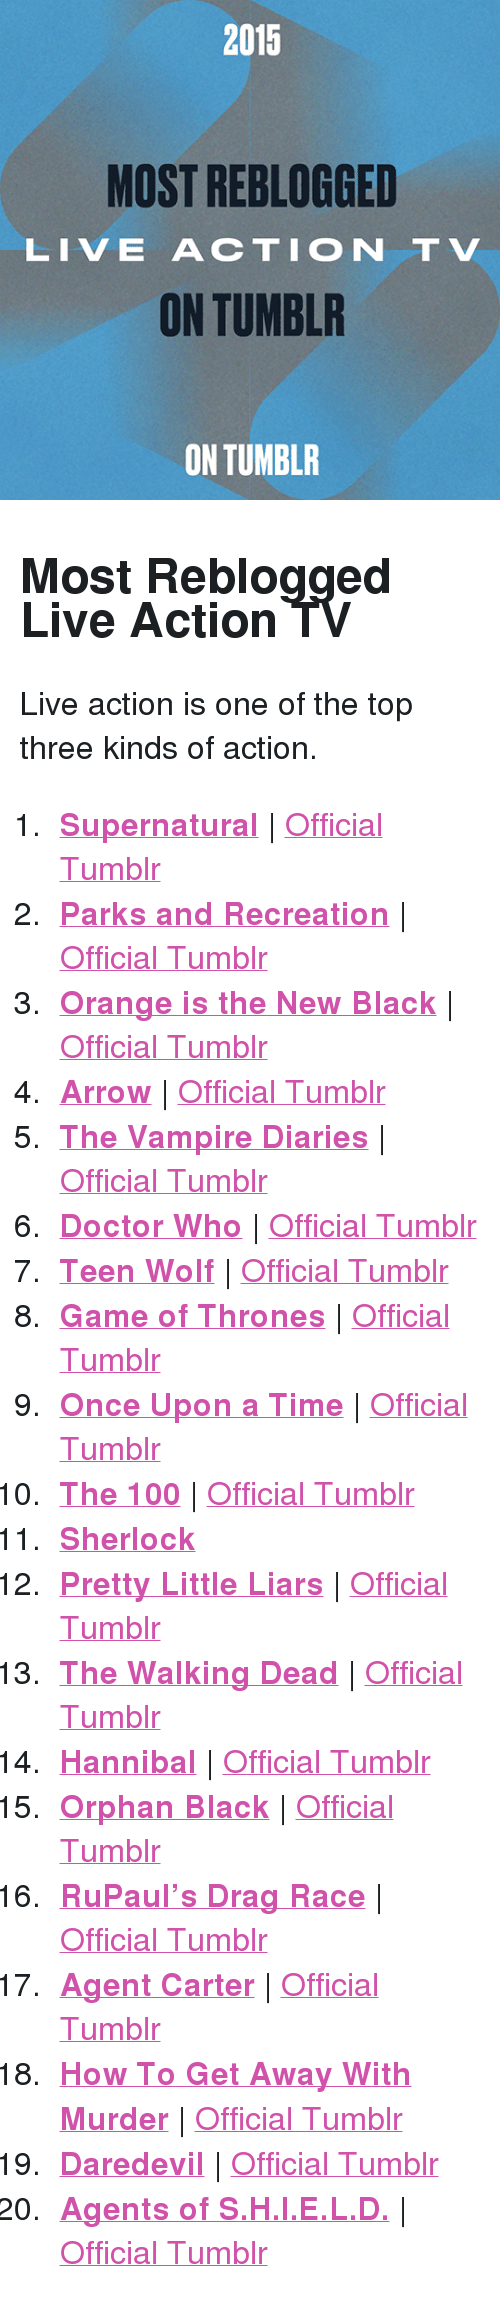 """Anaconda, Doctor, and Game of Thrones: 2015  MOST REBLOGGED  LIVE ACTION TV  ON TUMBLR  ON TUMBLR <h2>Most Reblogged Live Action TV</h2><p>Live action is one of the top three kinds of action.<br/></p><ol><li><b><a href=""""http://www.tumblr.com/search/supernatural"""">Supernatural</a></b>